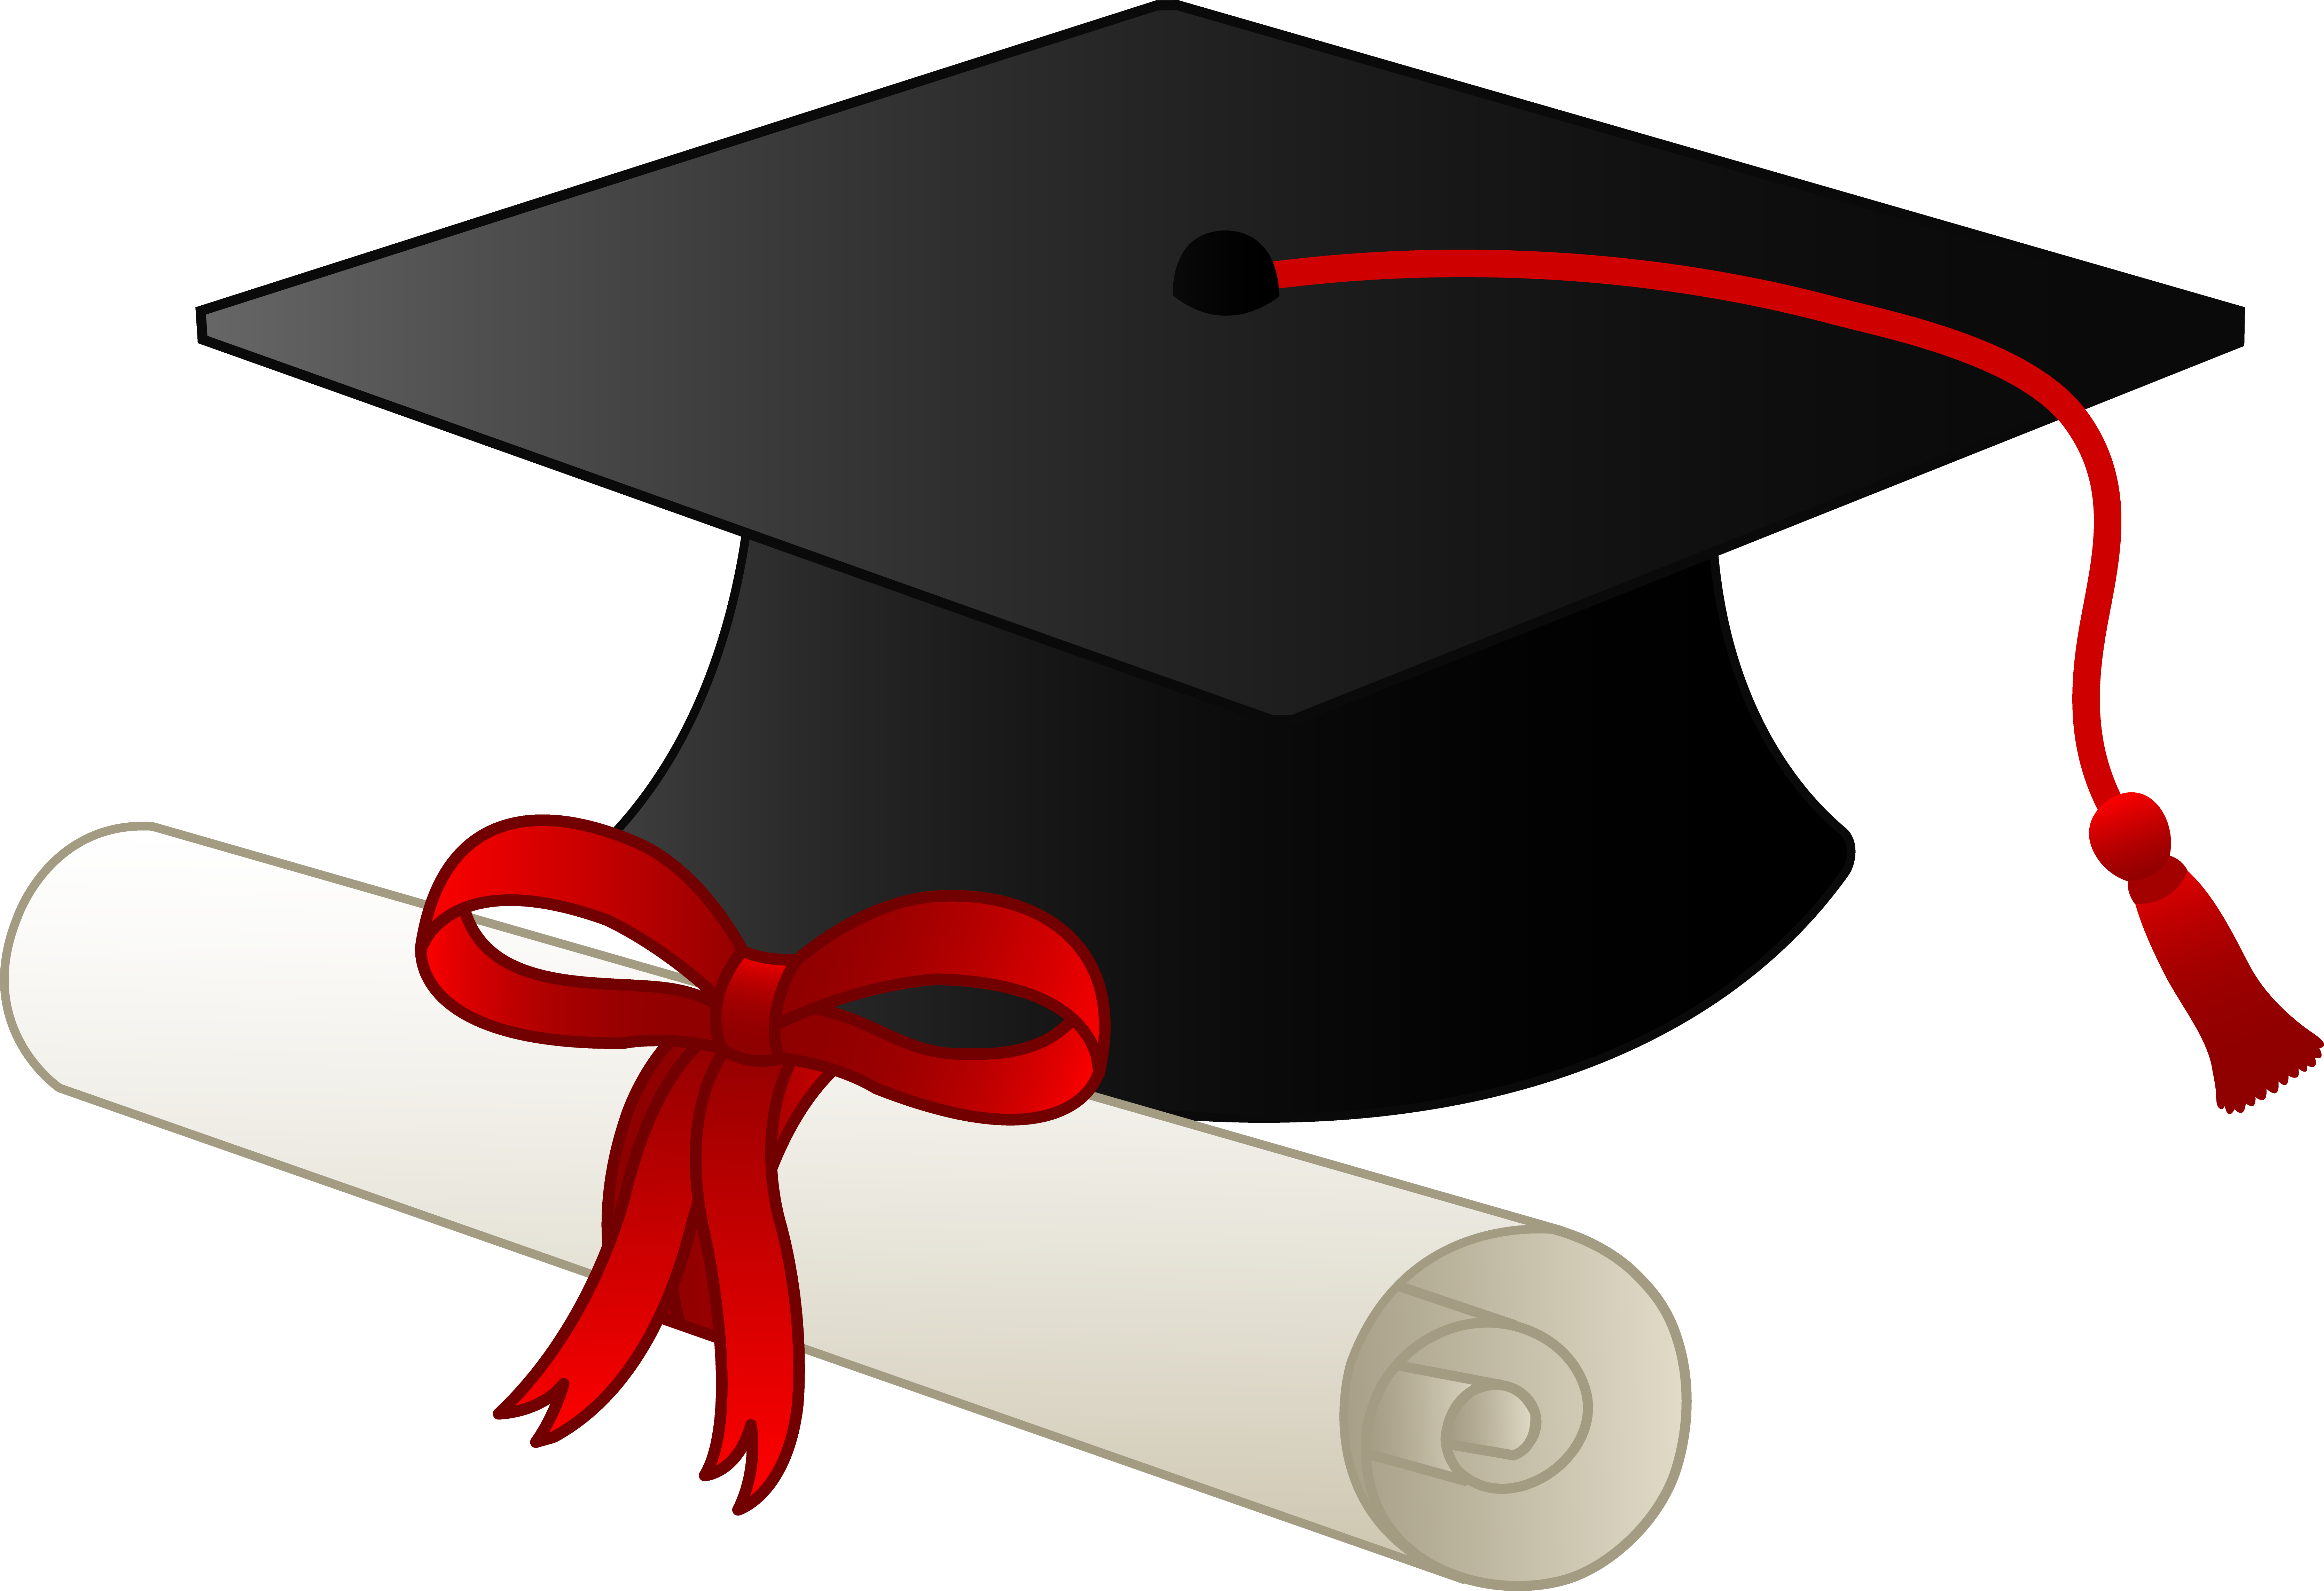 78  ideas about Graduation Cap Clipart on Pinterest | Graduation cards, Silhouettes and Silhouette online store